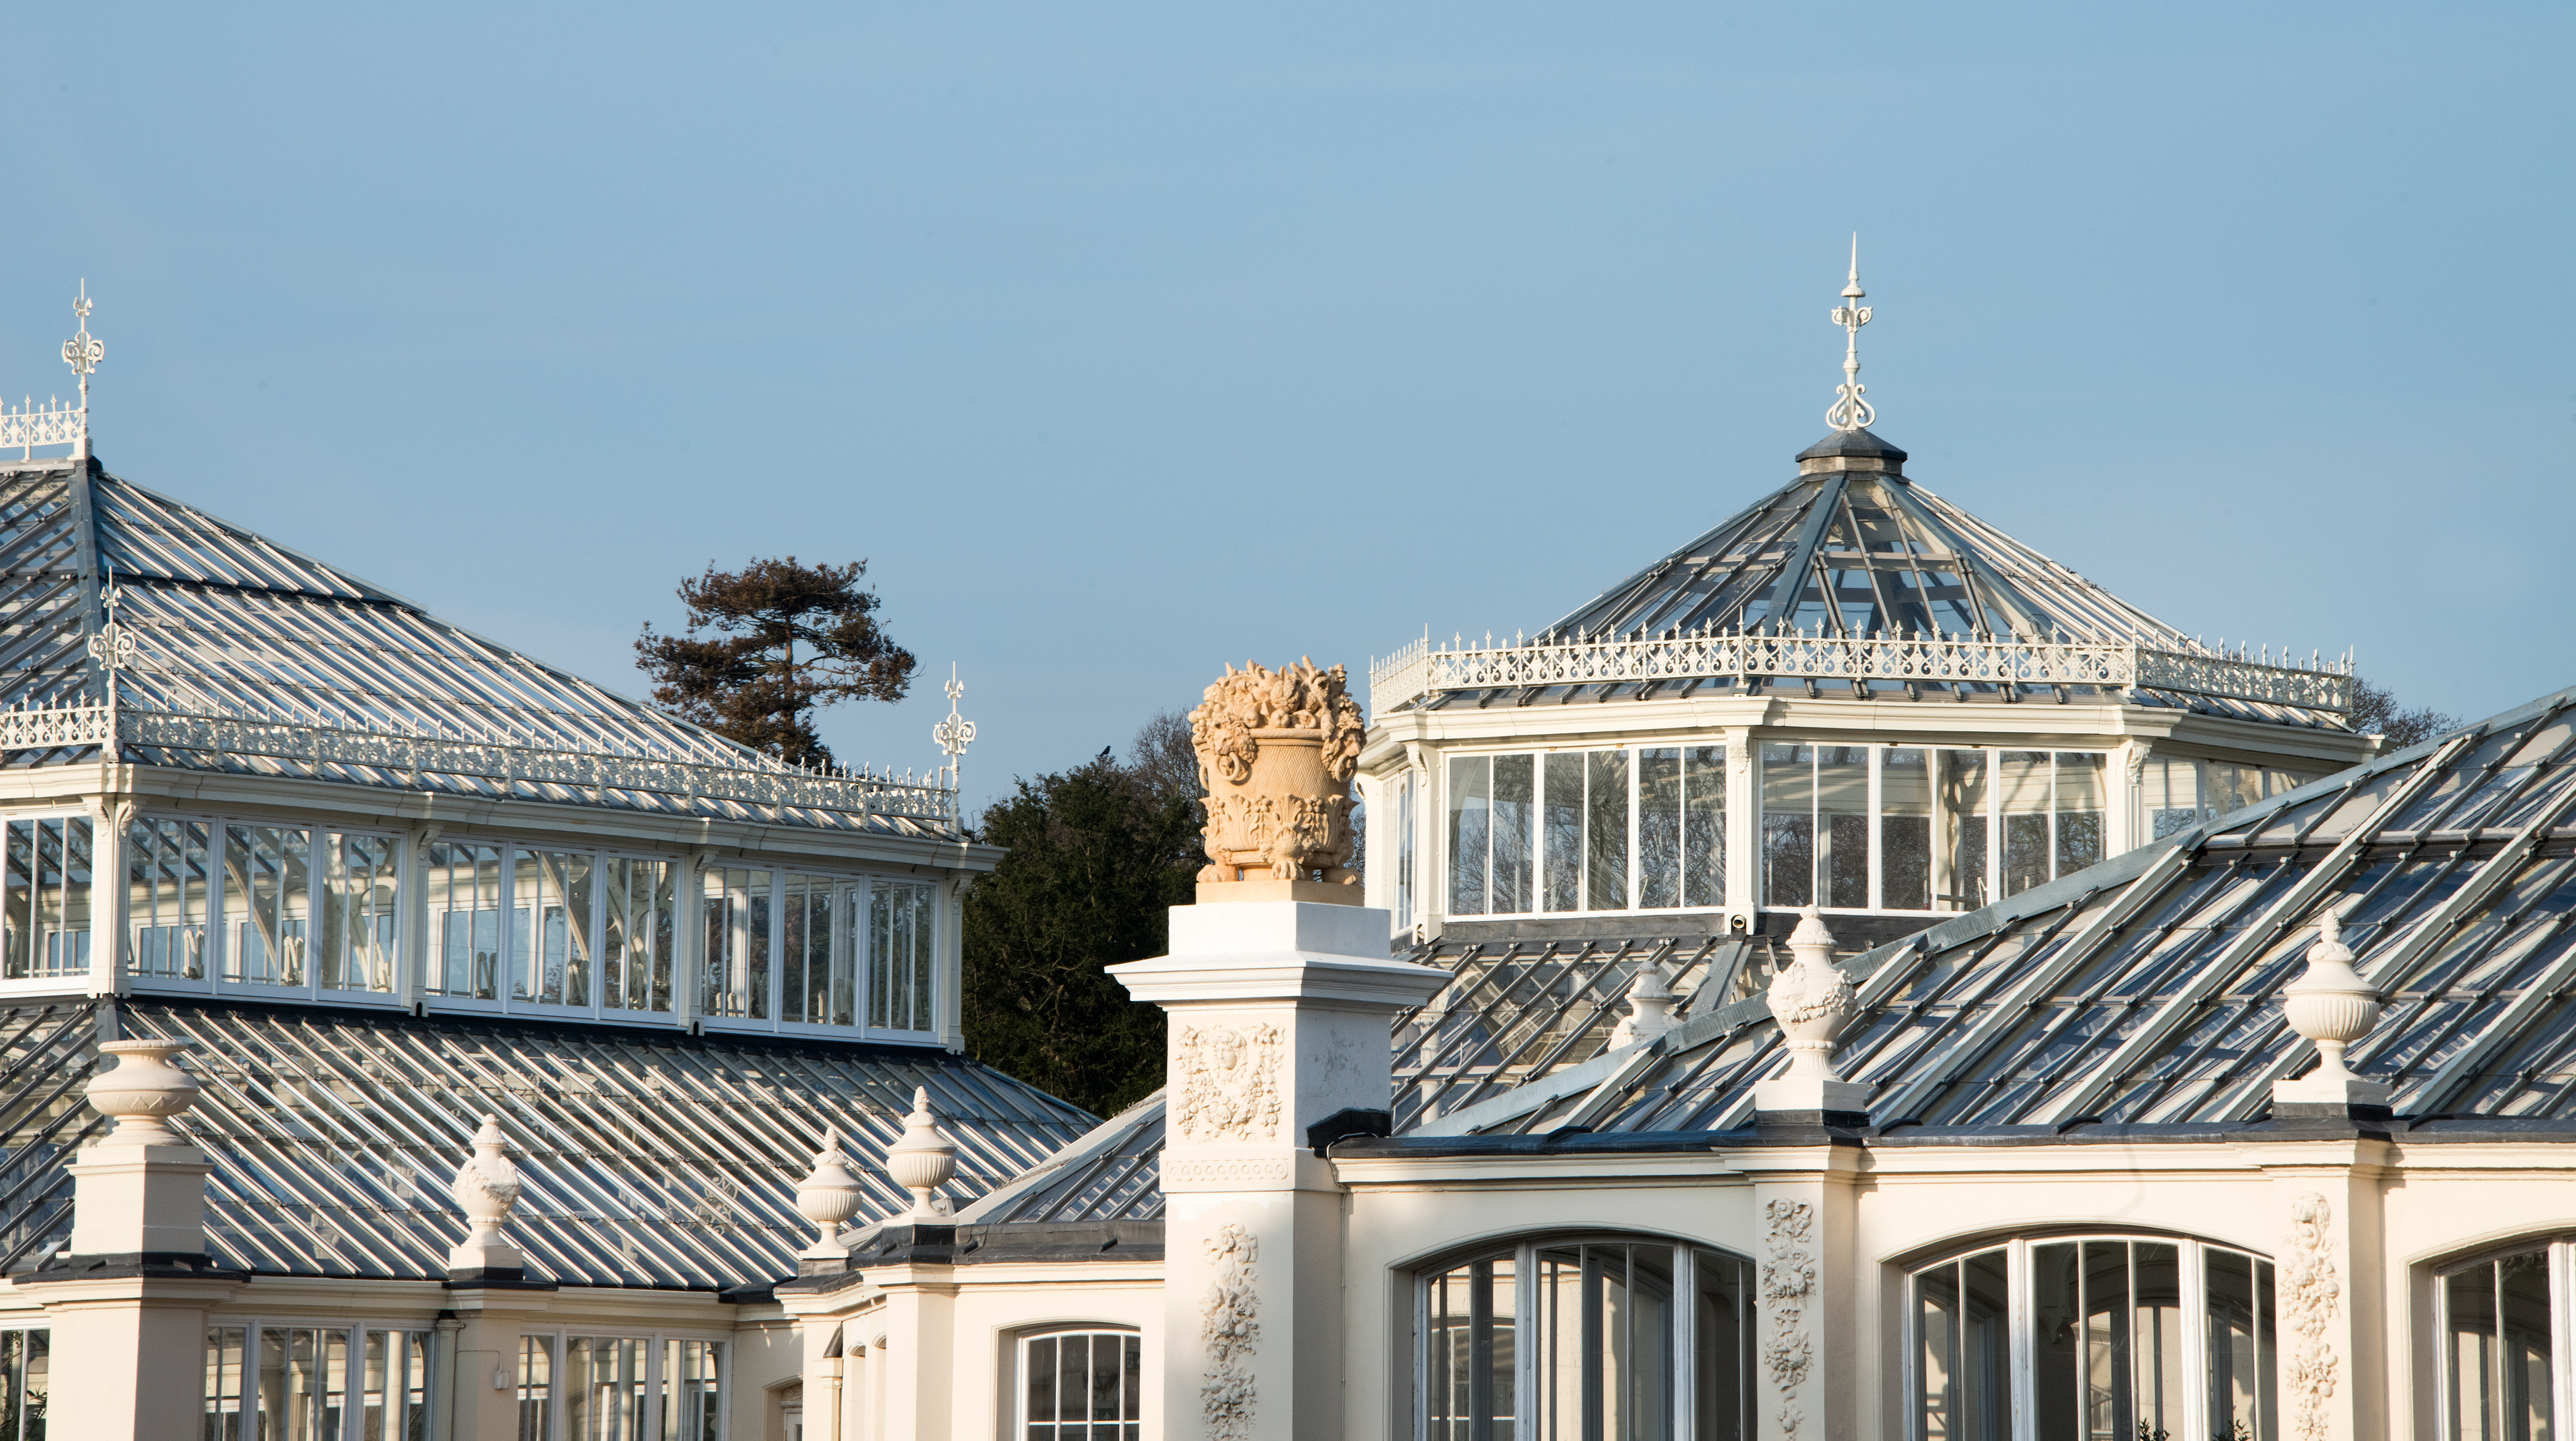 Temperate House, Jeff Eden / RBG Kew